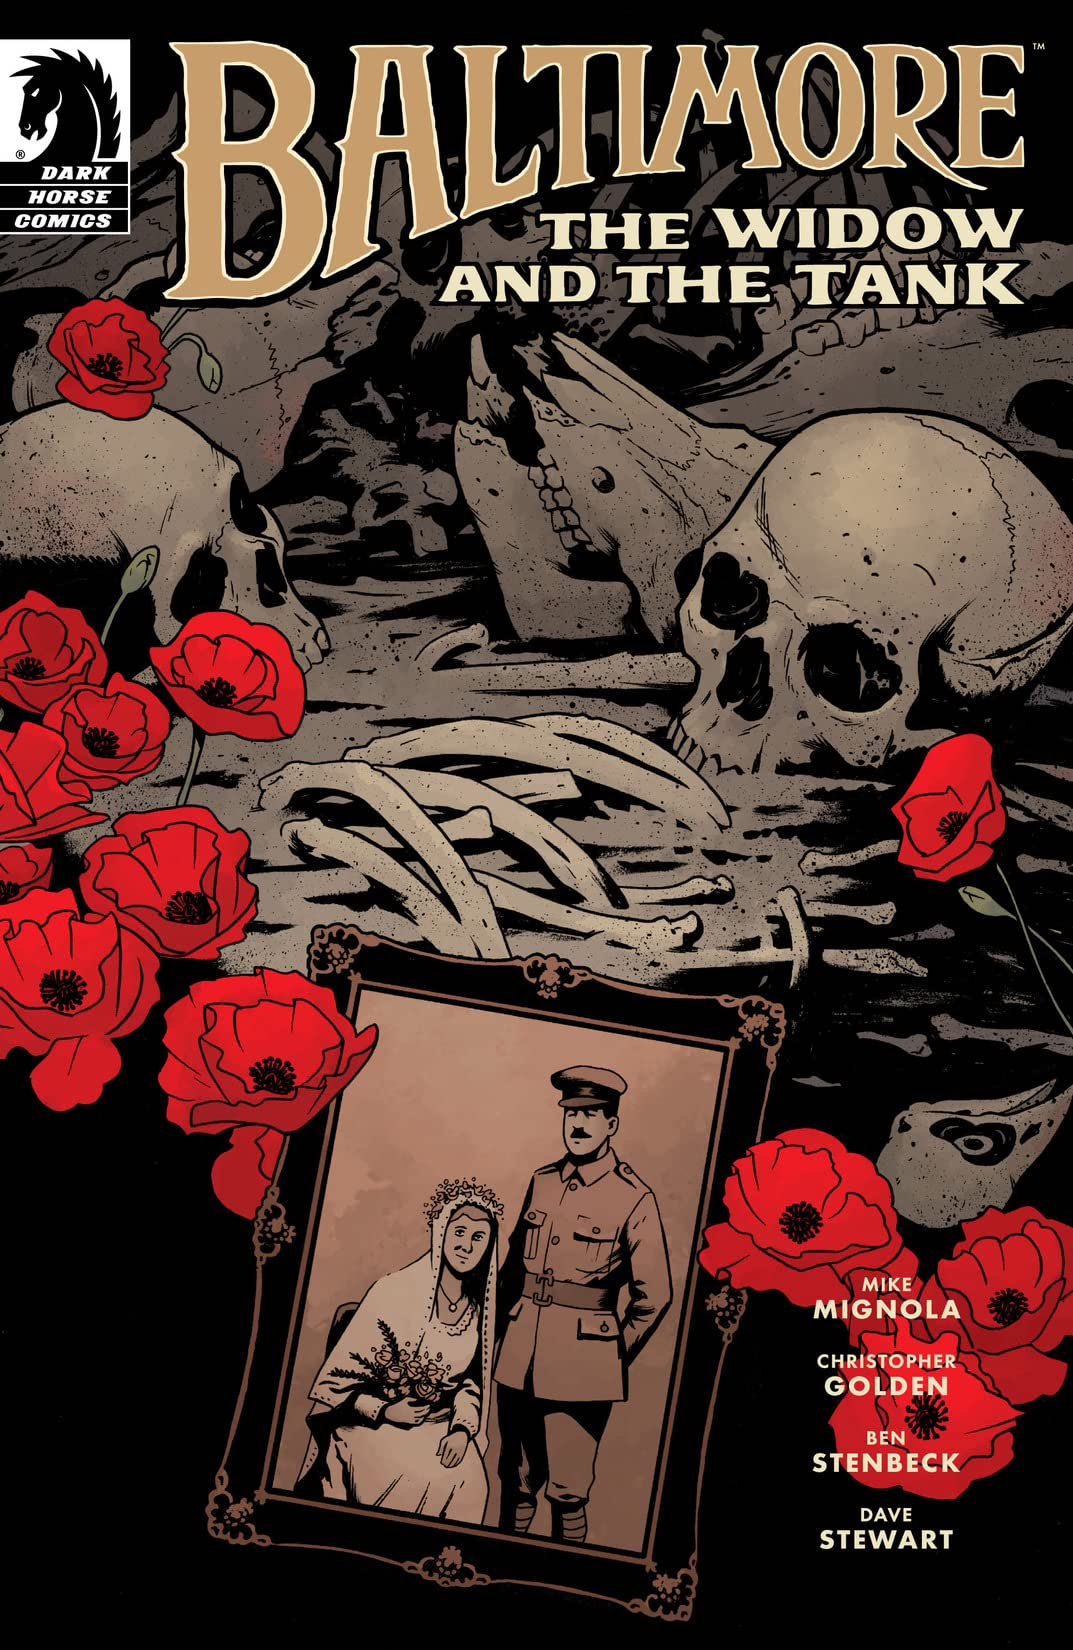 Baltimore: The Widow and the Tank #0